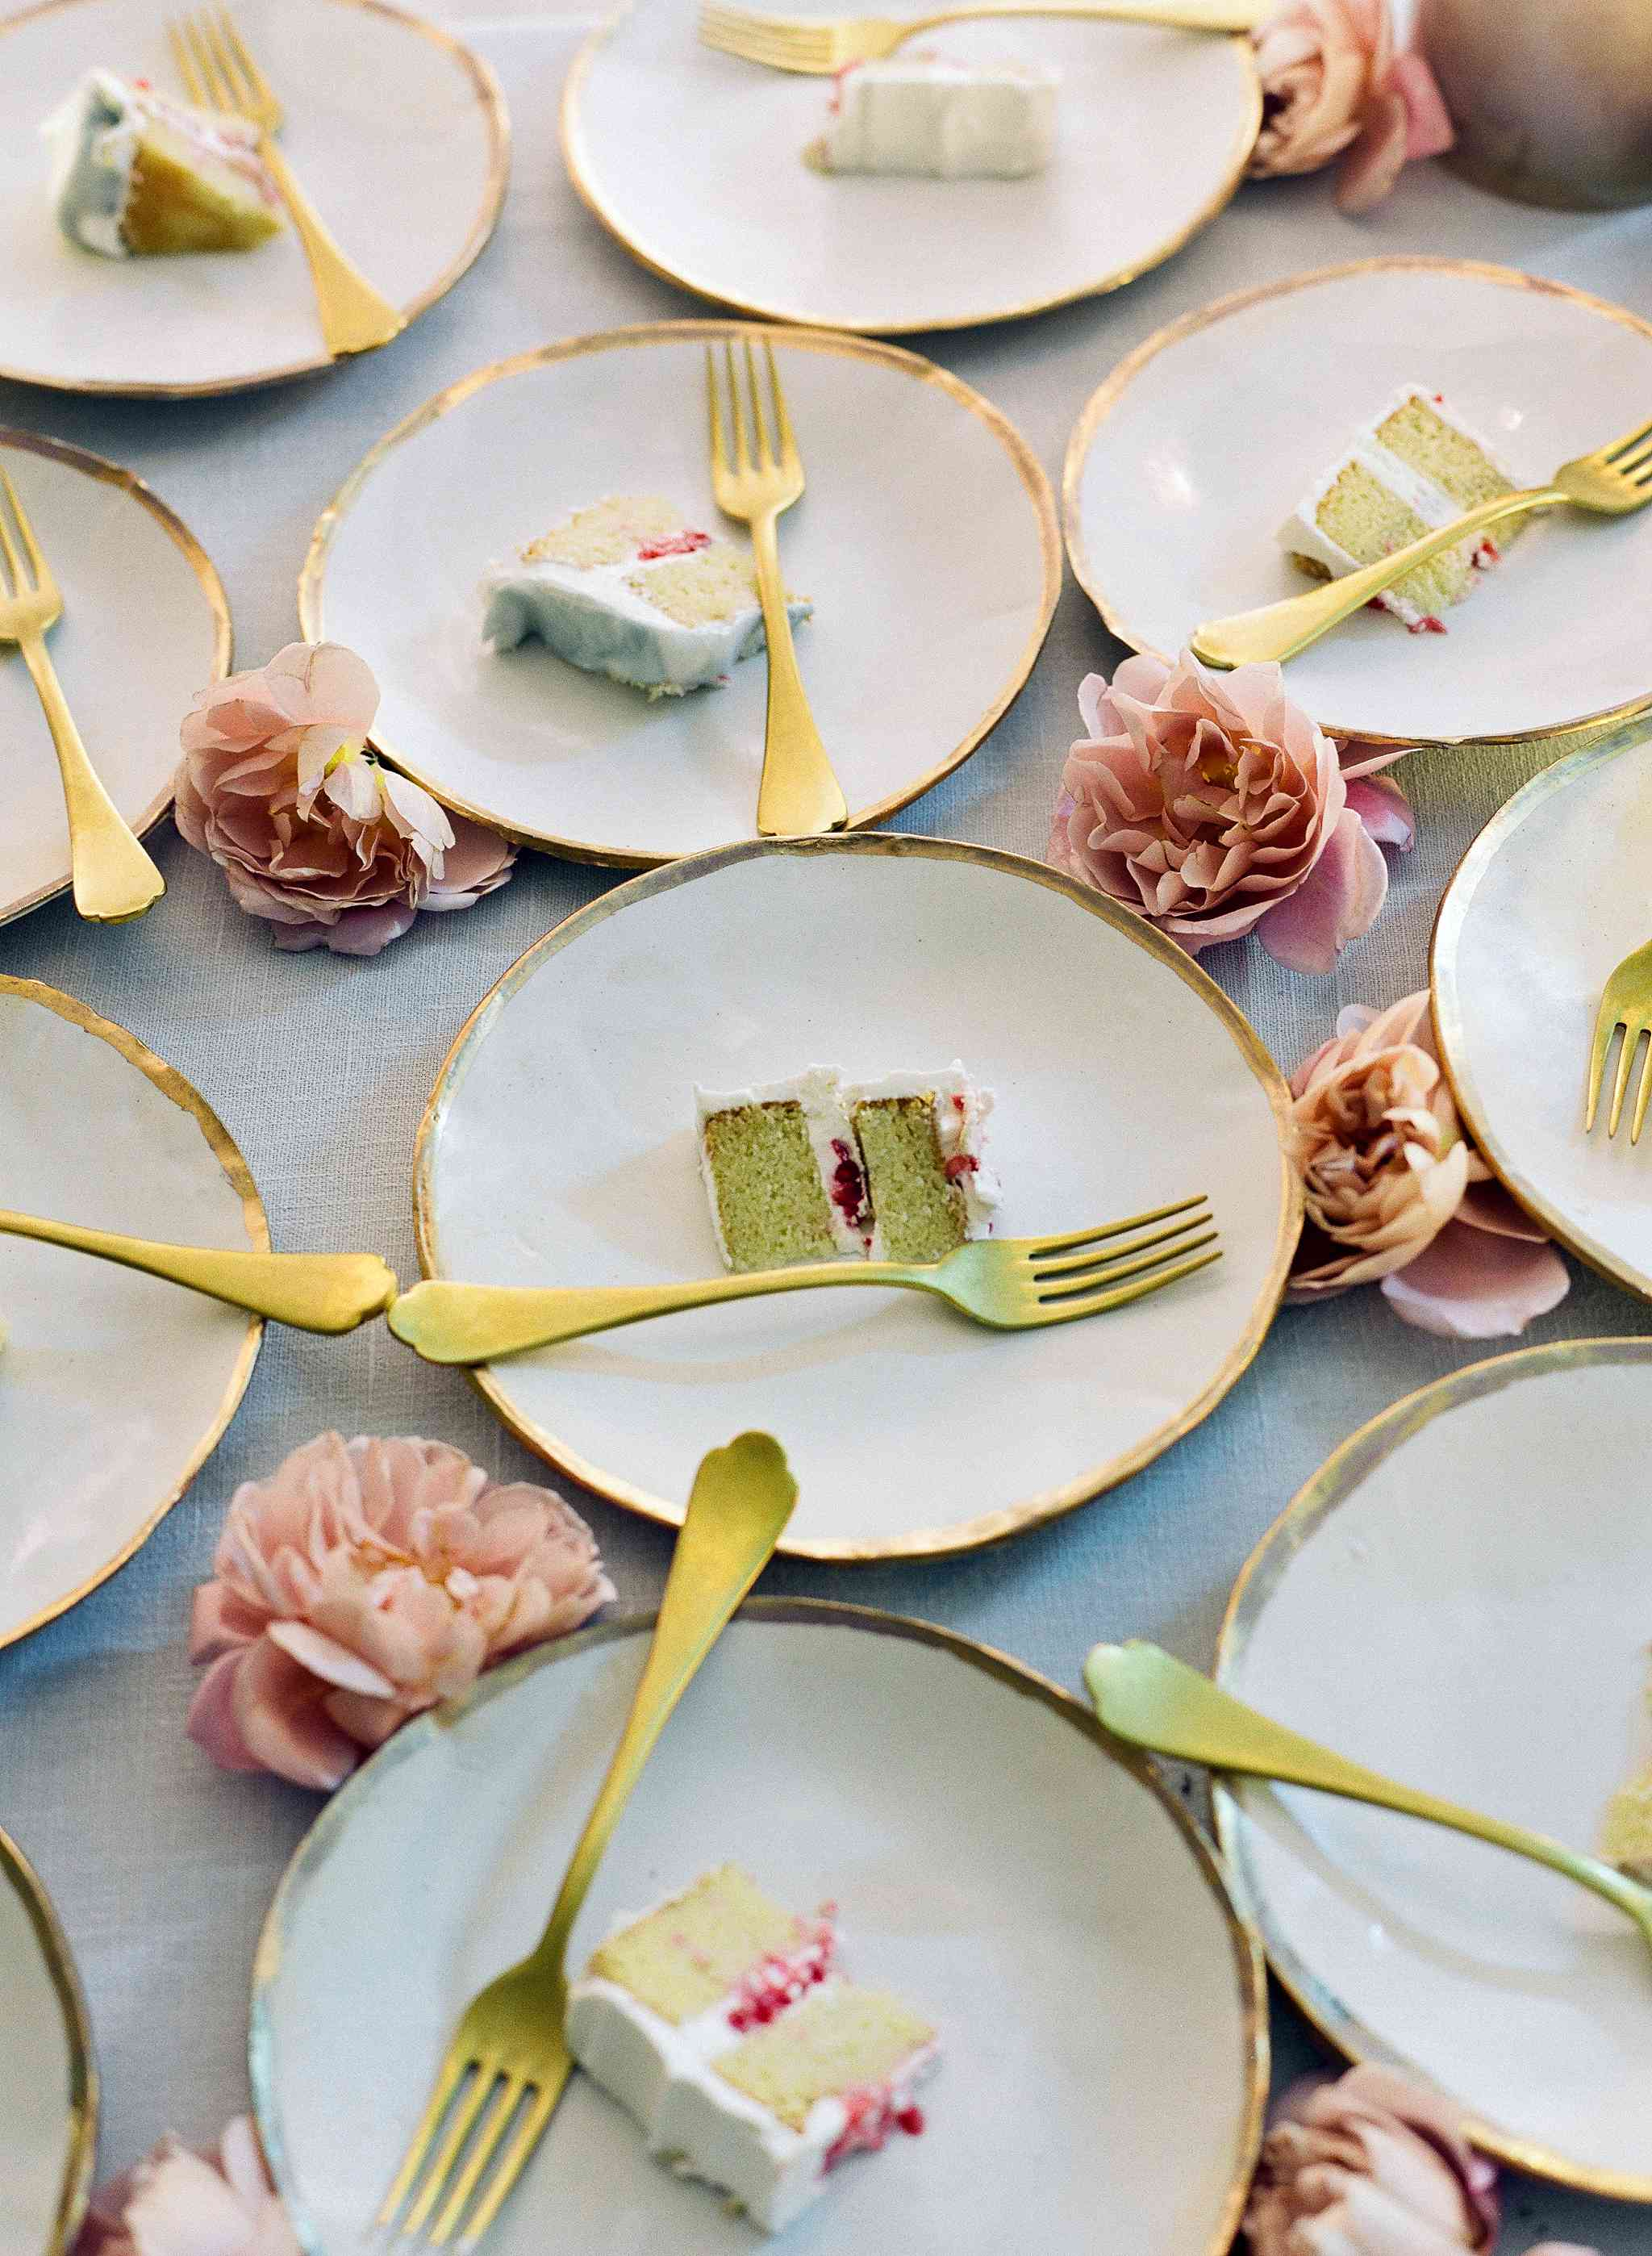 White plates with slices of cake and gold silverware